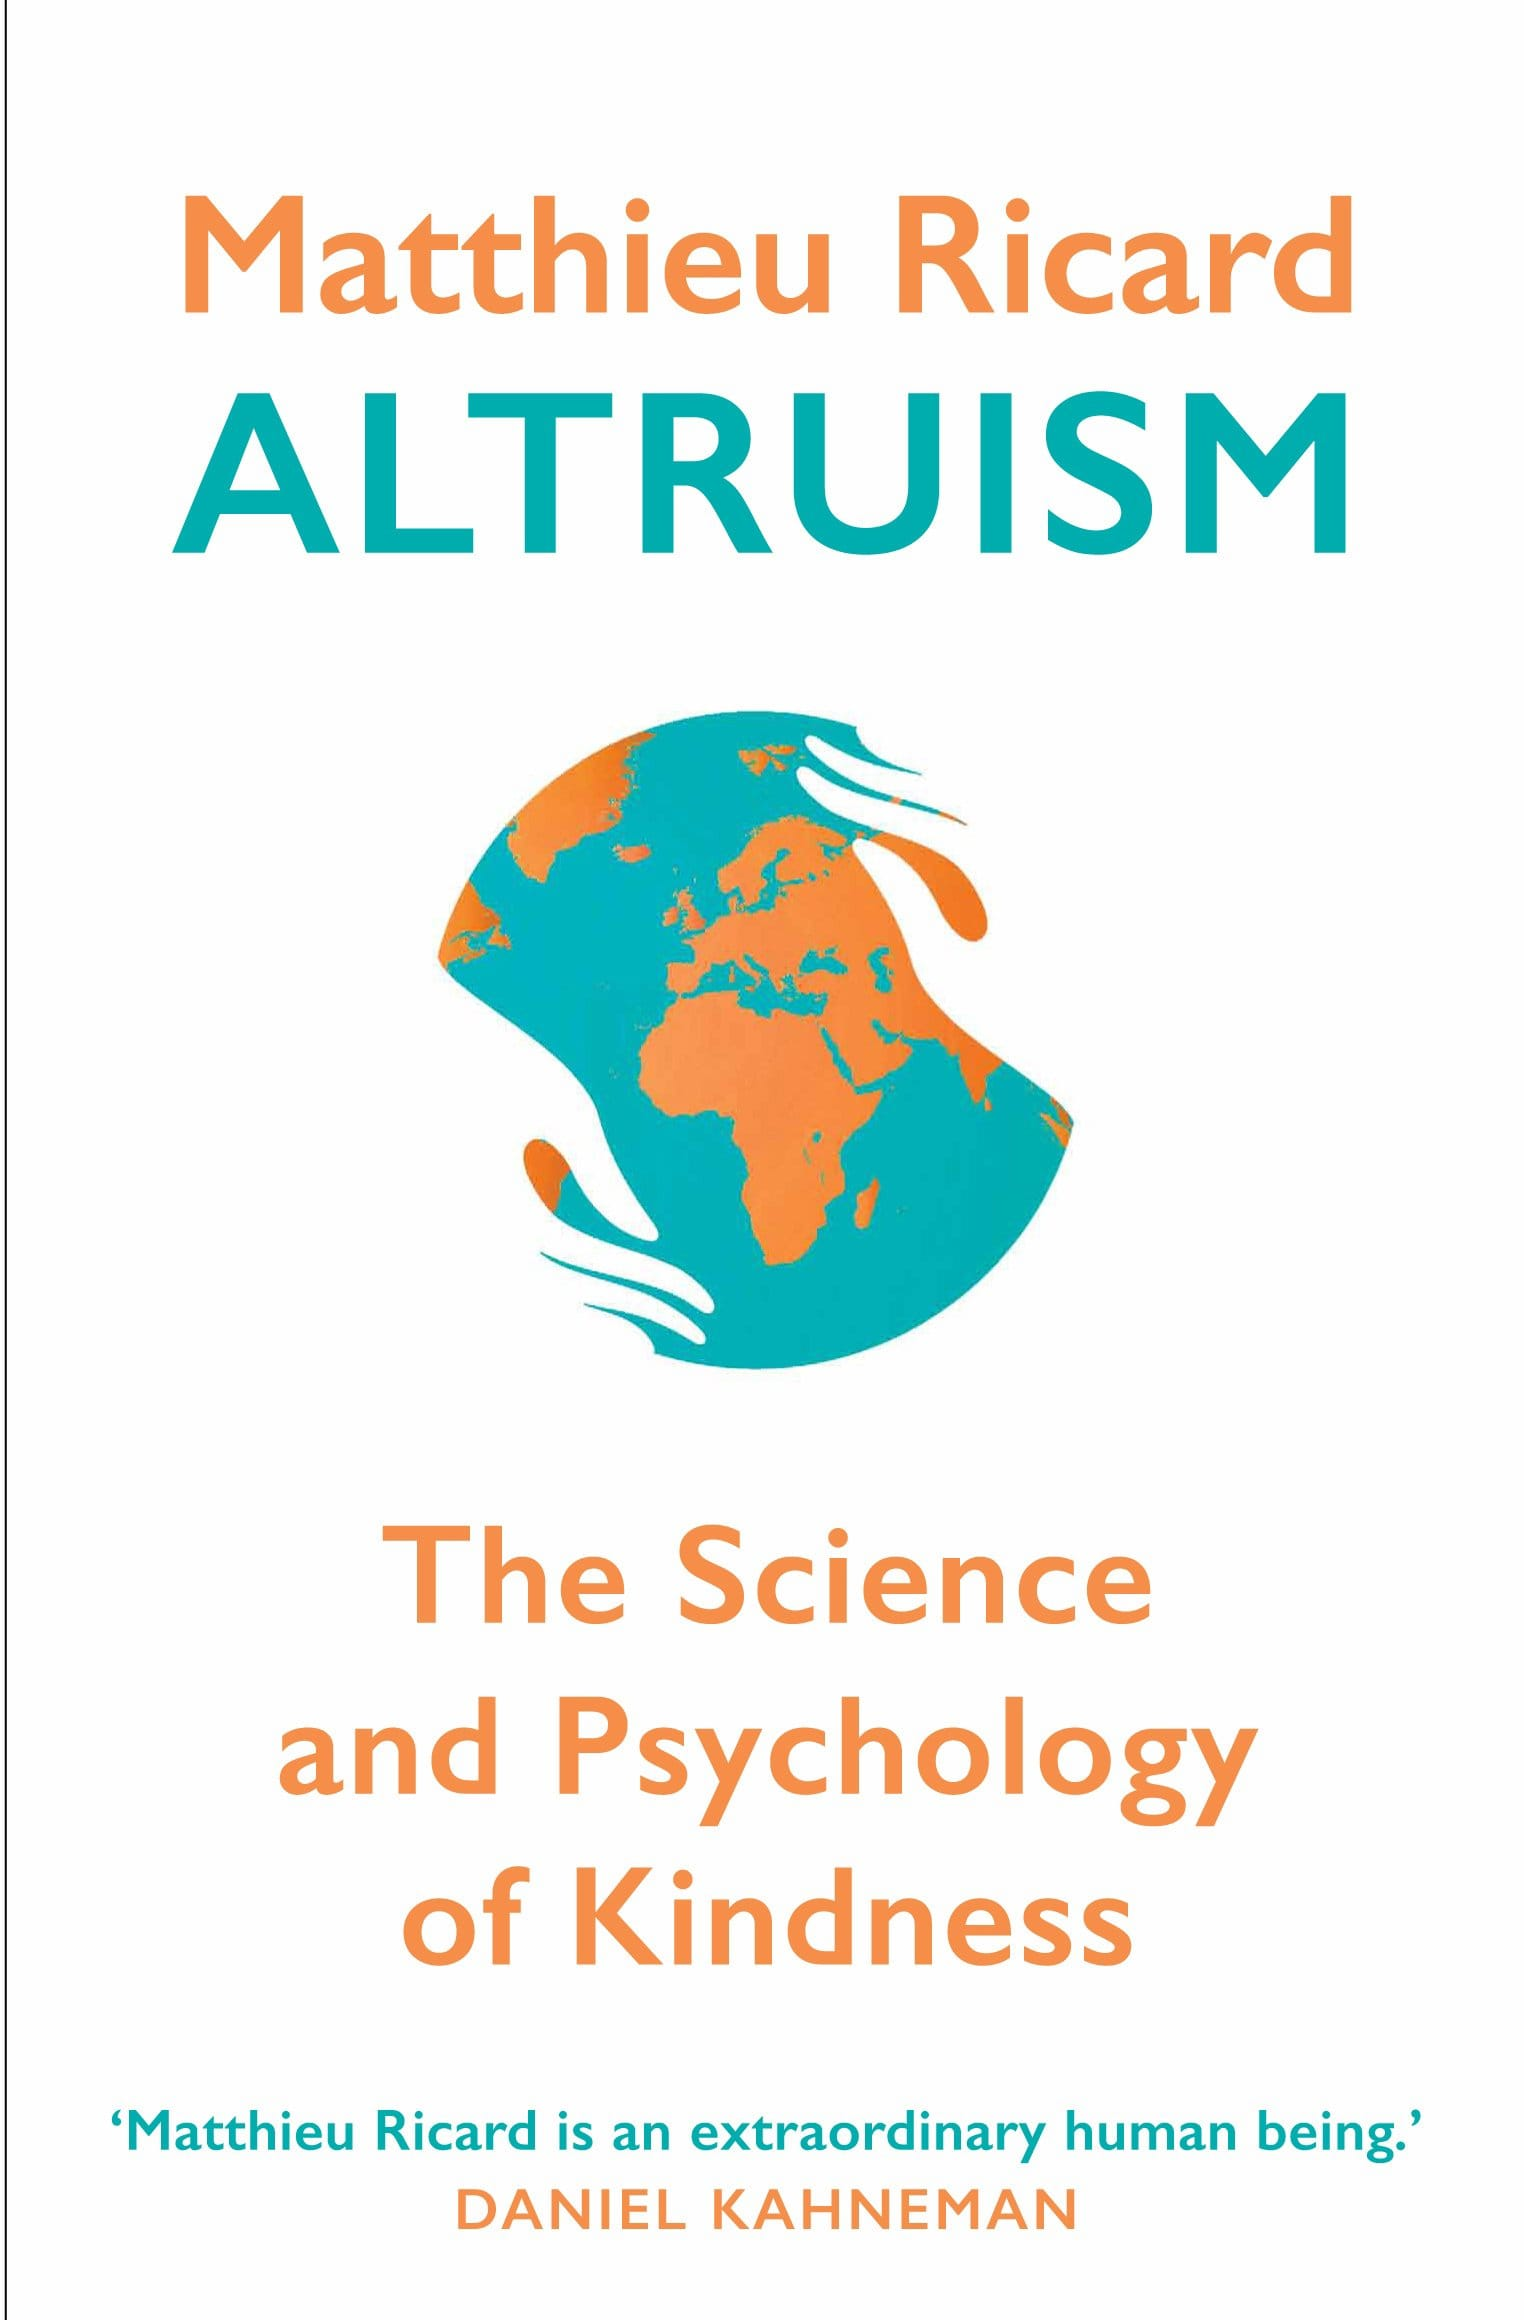 Altruism: The Science and Psychology of Kindness by Matthieu Ricard